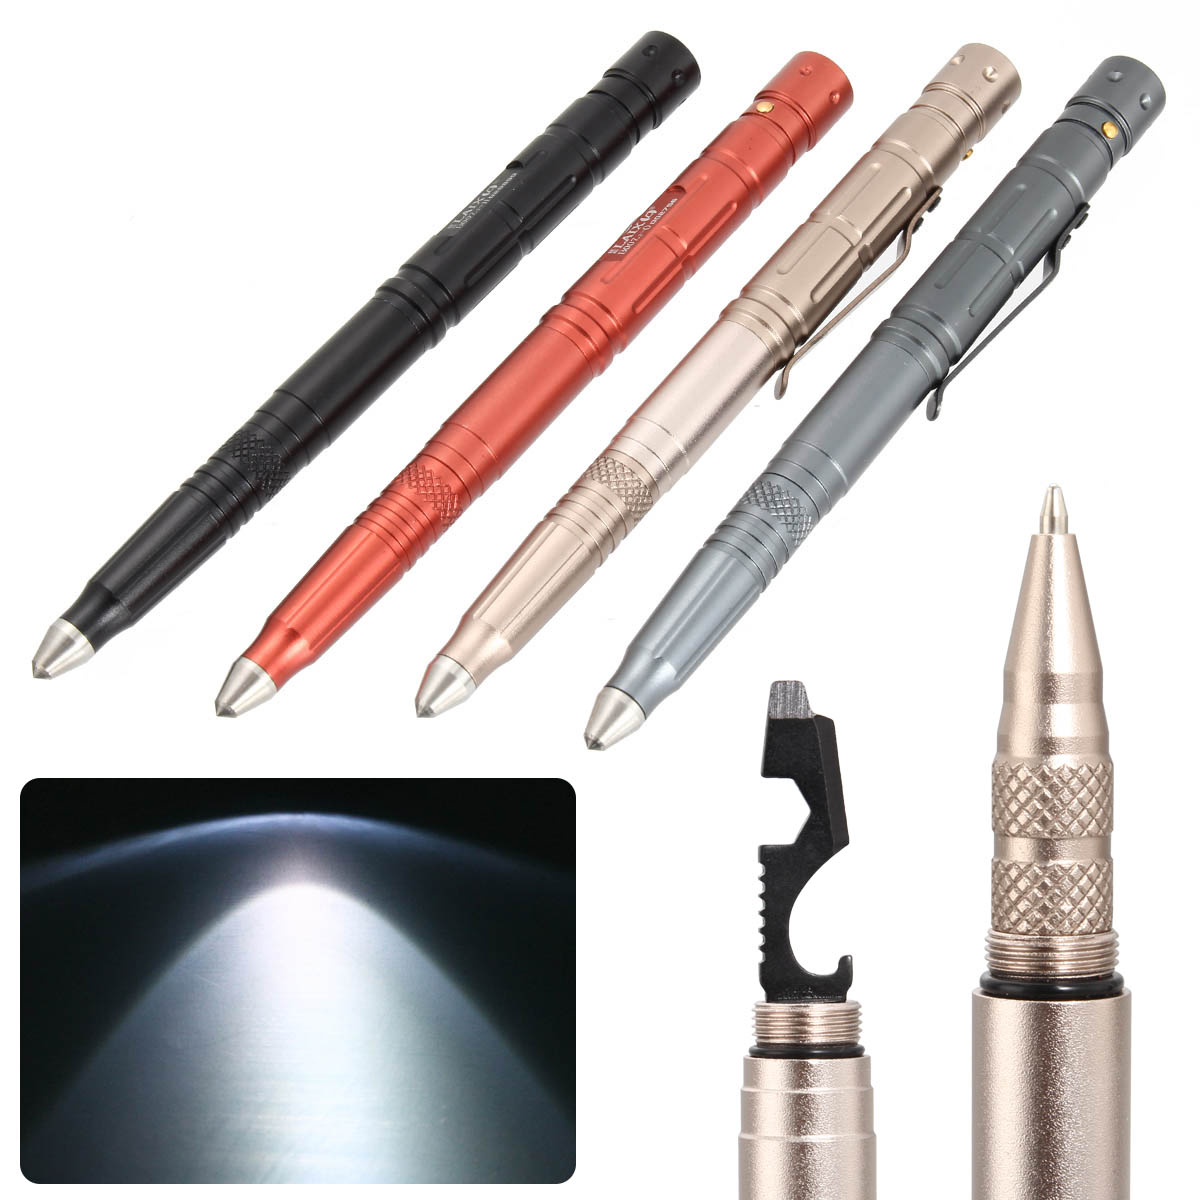 Multi-function Tactical Pen Survival Military LED Flashlight Glass Breaker Self Defense Tool Ballpoint Pens HJ55